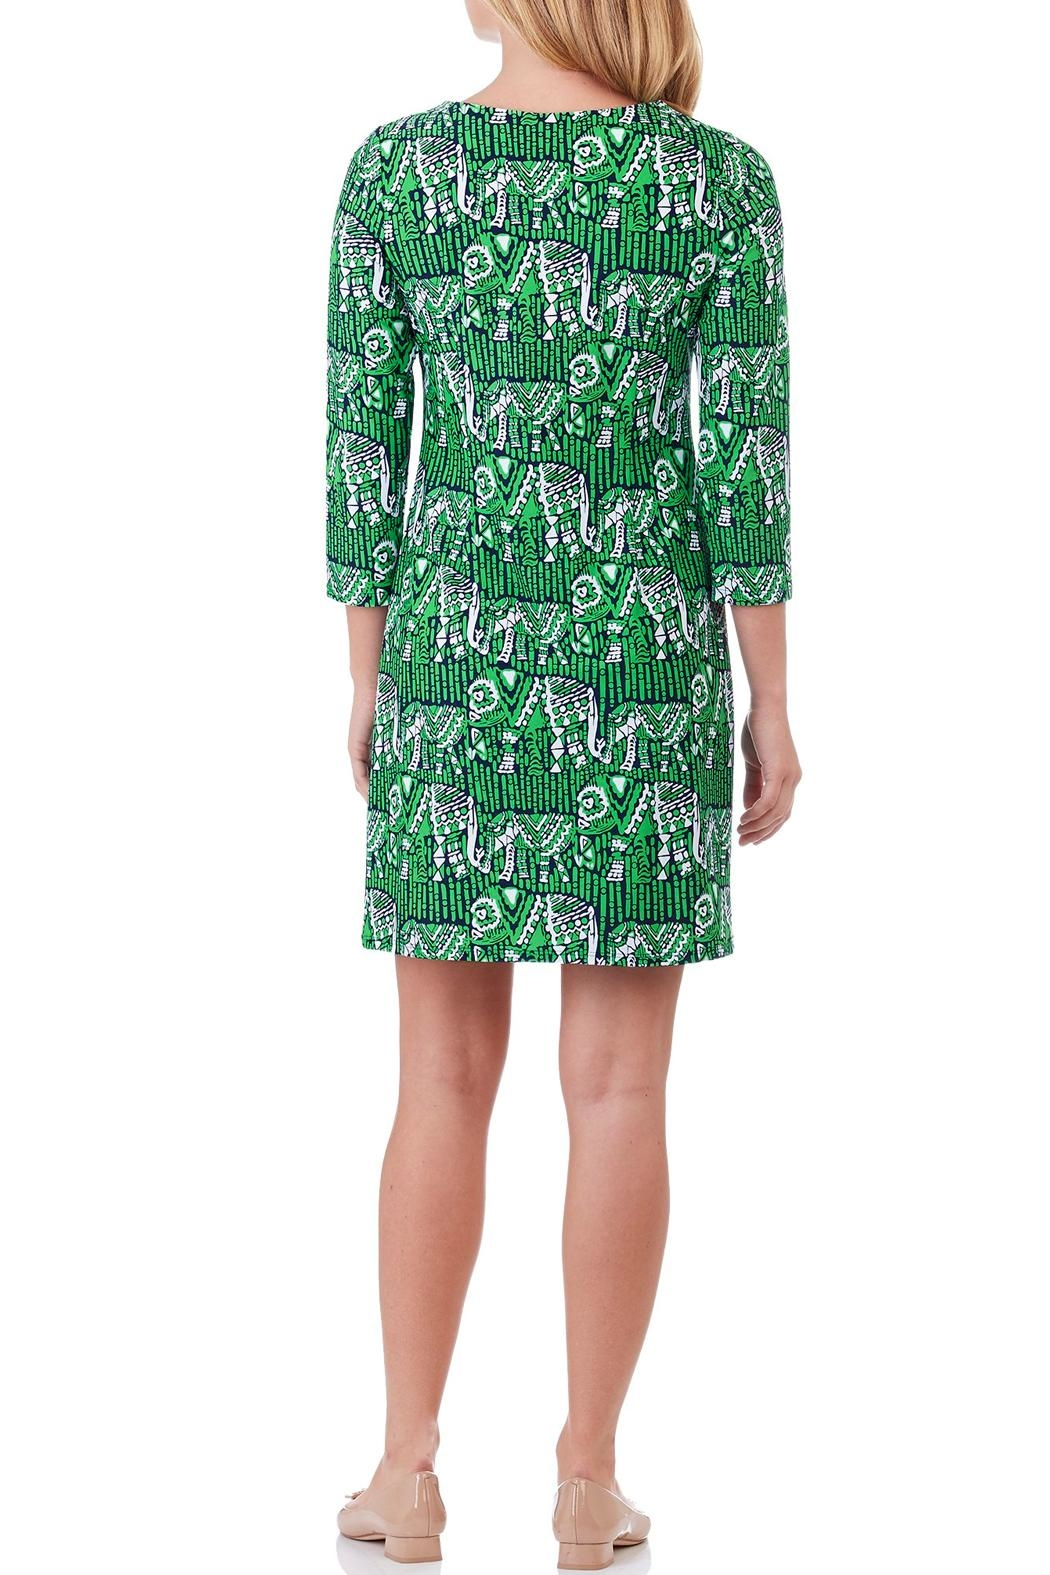 Jude Connally Sabine Shift Dress - Front Full Image